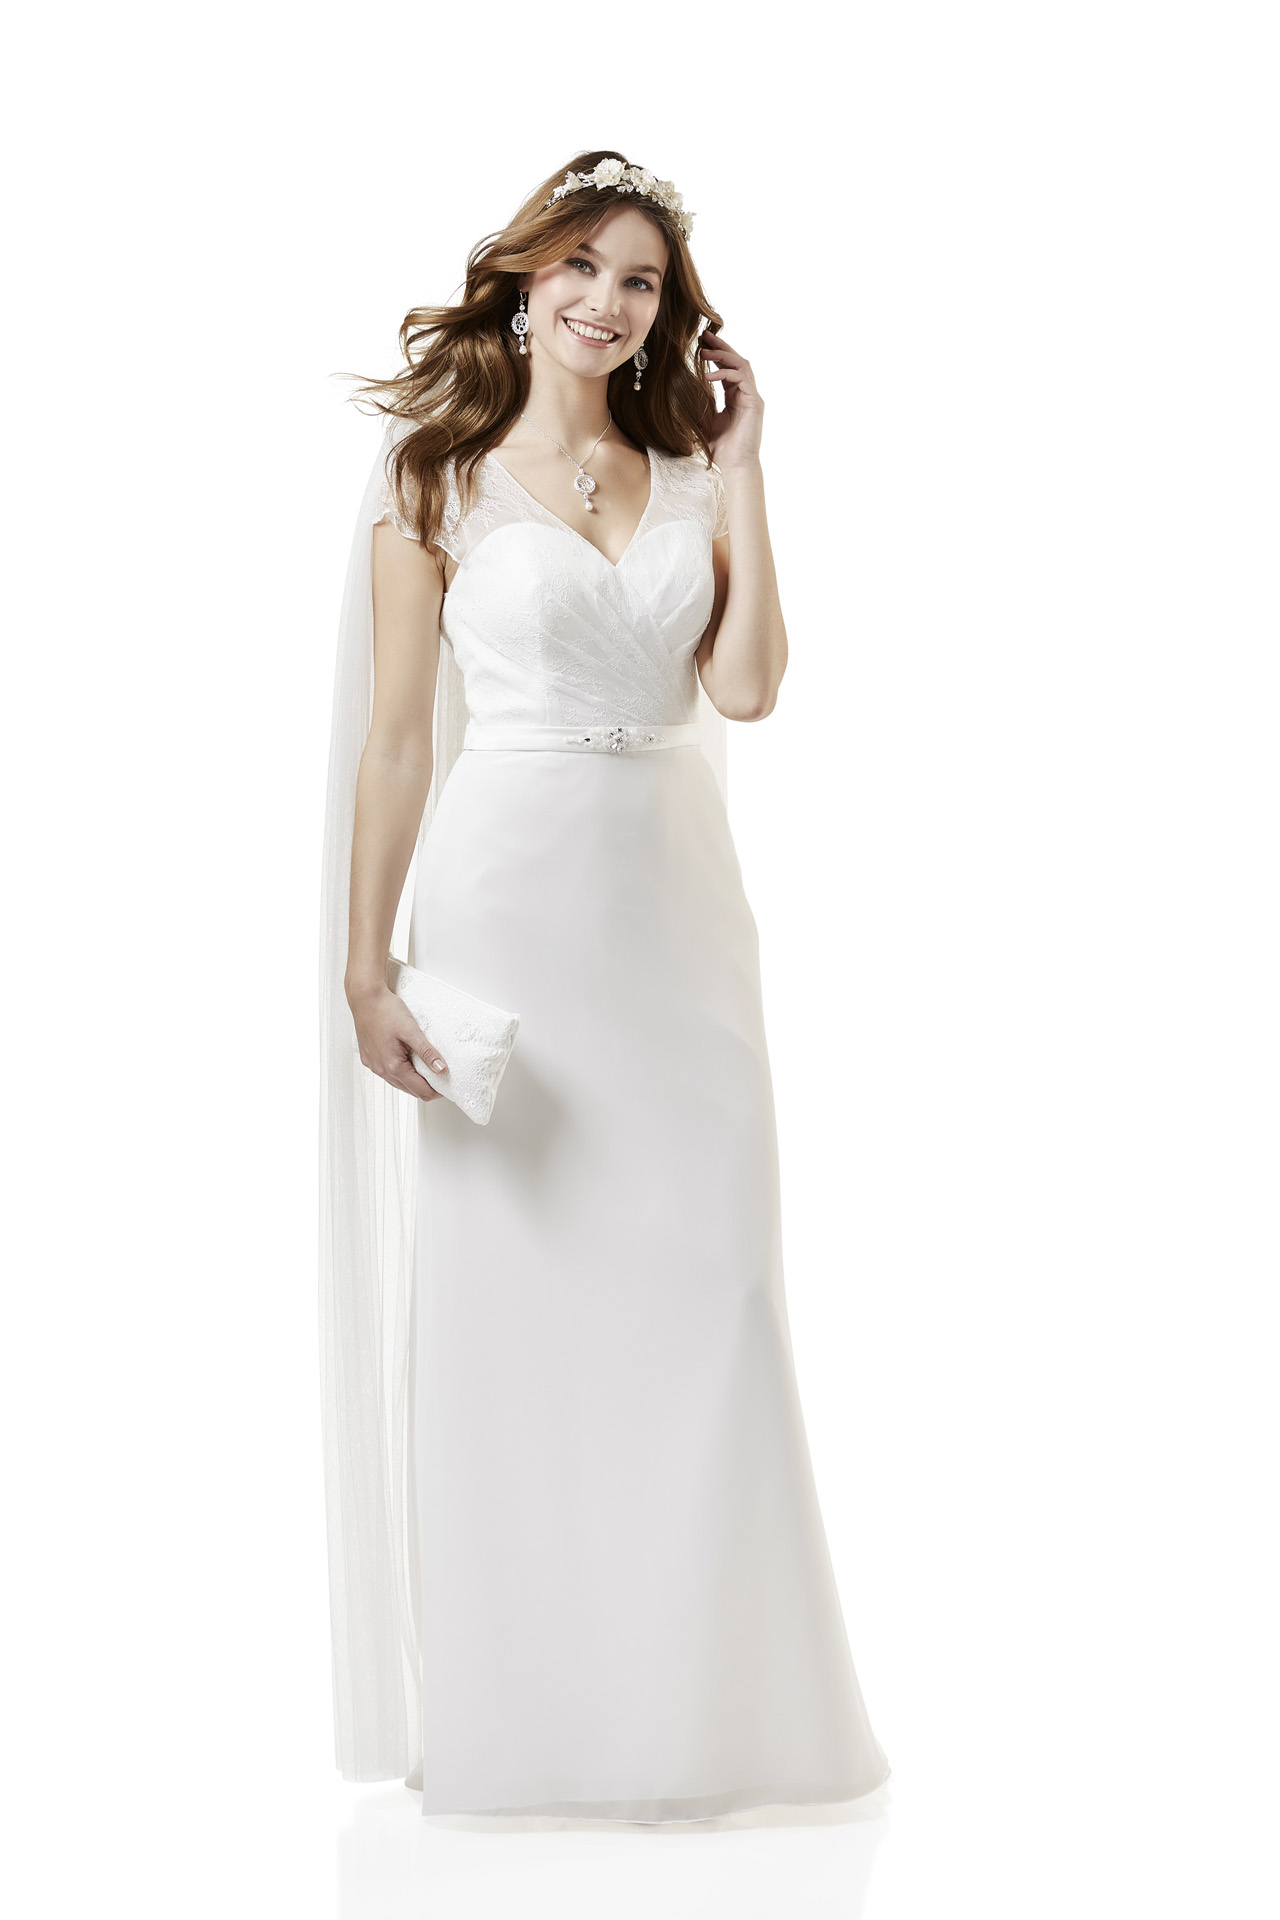 Brautkleid Weise Essentials Kollektion 2018 Modell 334362